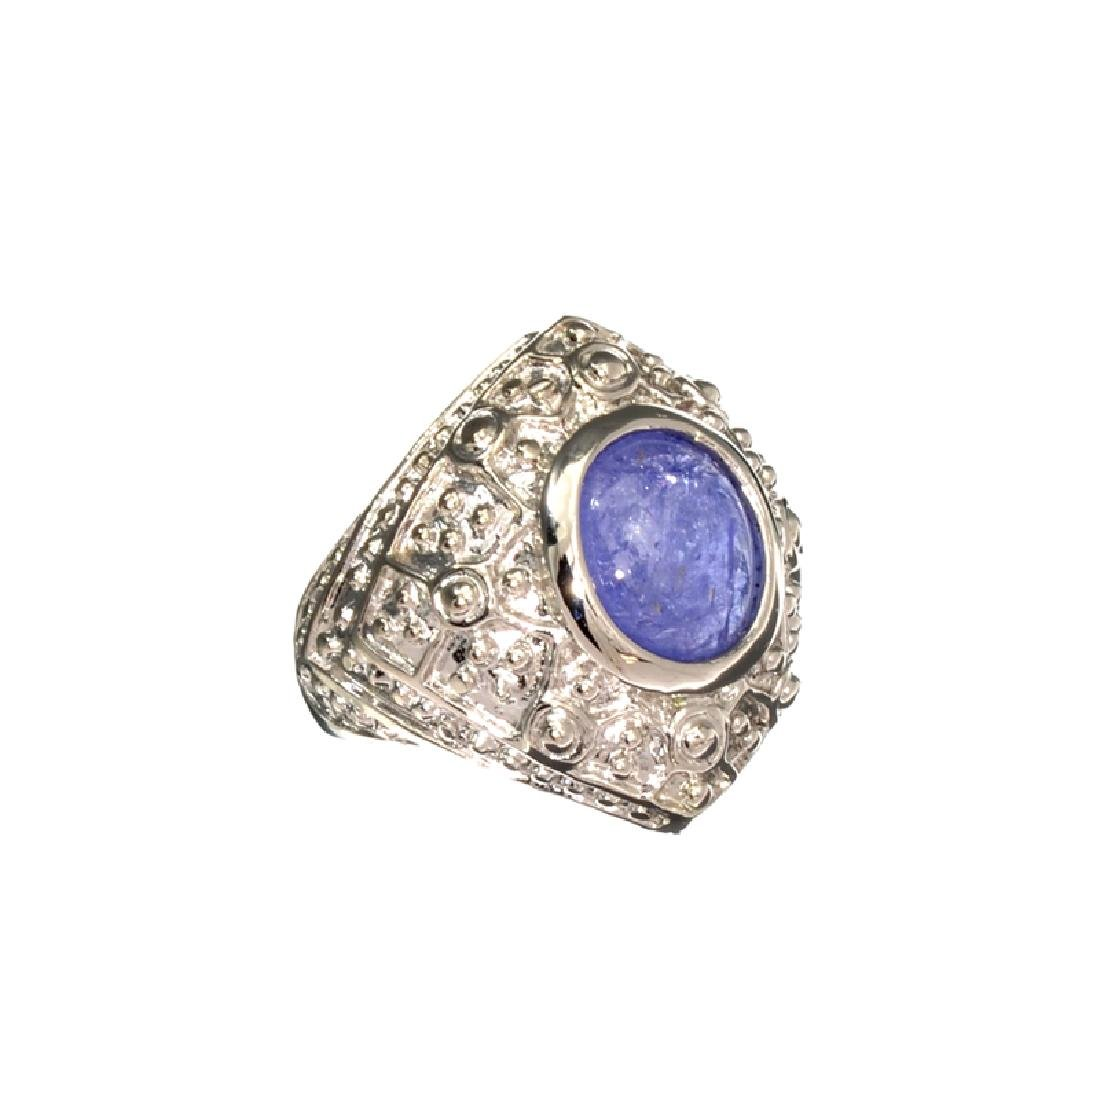 APP: 1.2k Fine Jewelry 4.31CT Oval Cut Tanzanite And